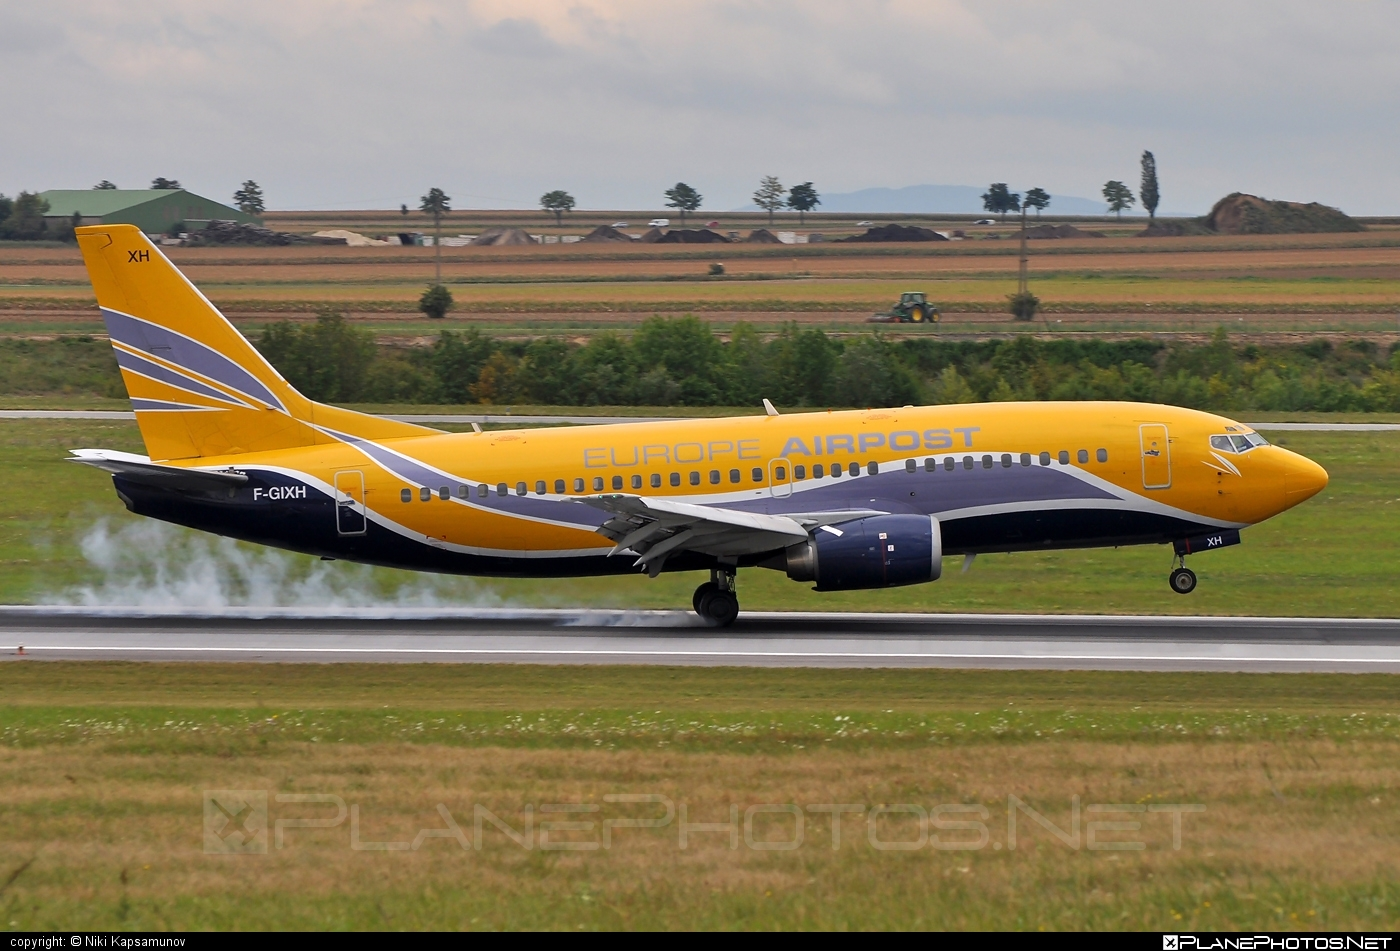 Boeing 737-300QC - F-GIXH operated by Europe Airpost #b737 #b737qc #boeing #boeing737